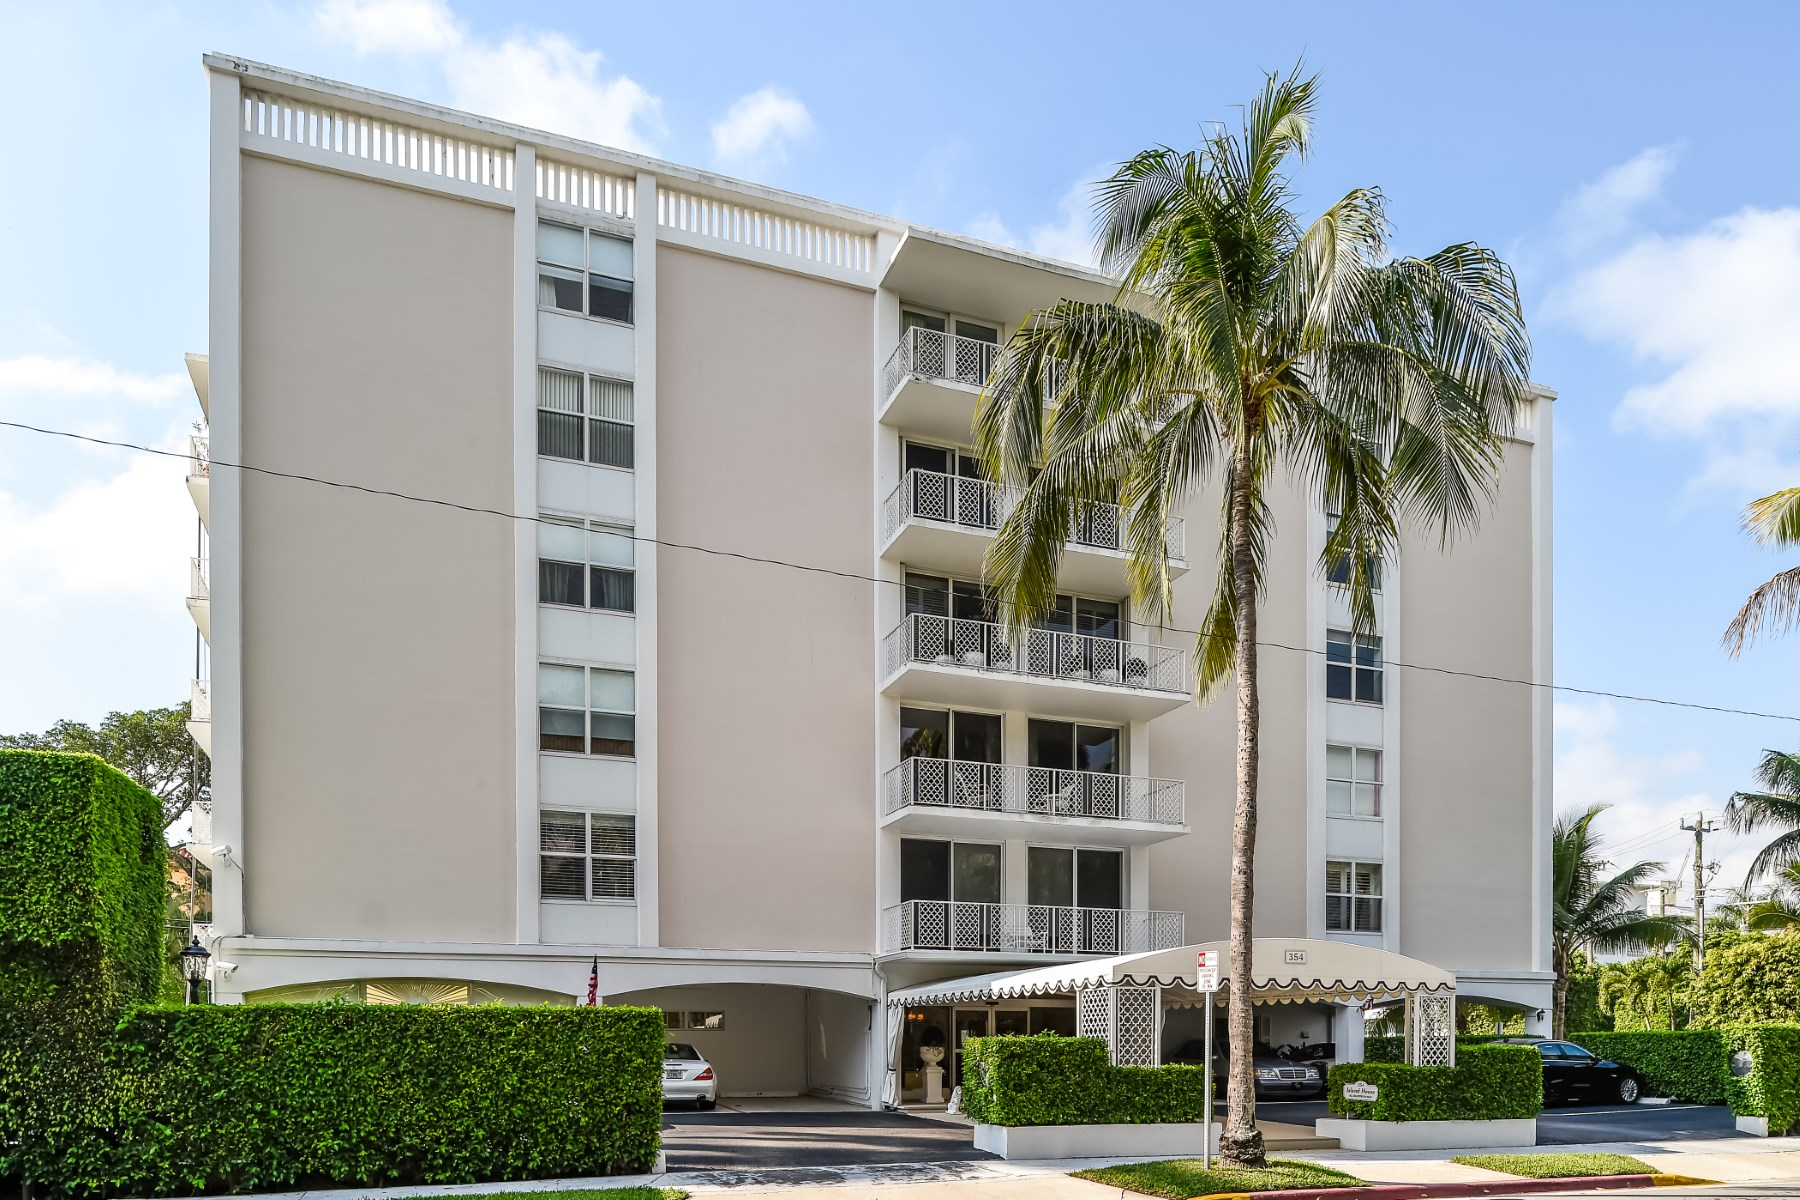 Condominium for Sale at Close to Worth Avenue 354 Chilean Ave Apt 2C Palm Beach, Florida, 33480 United States